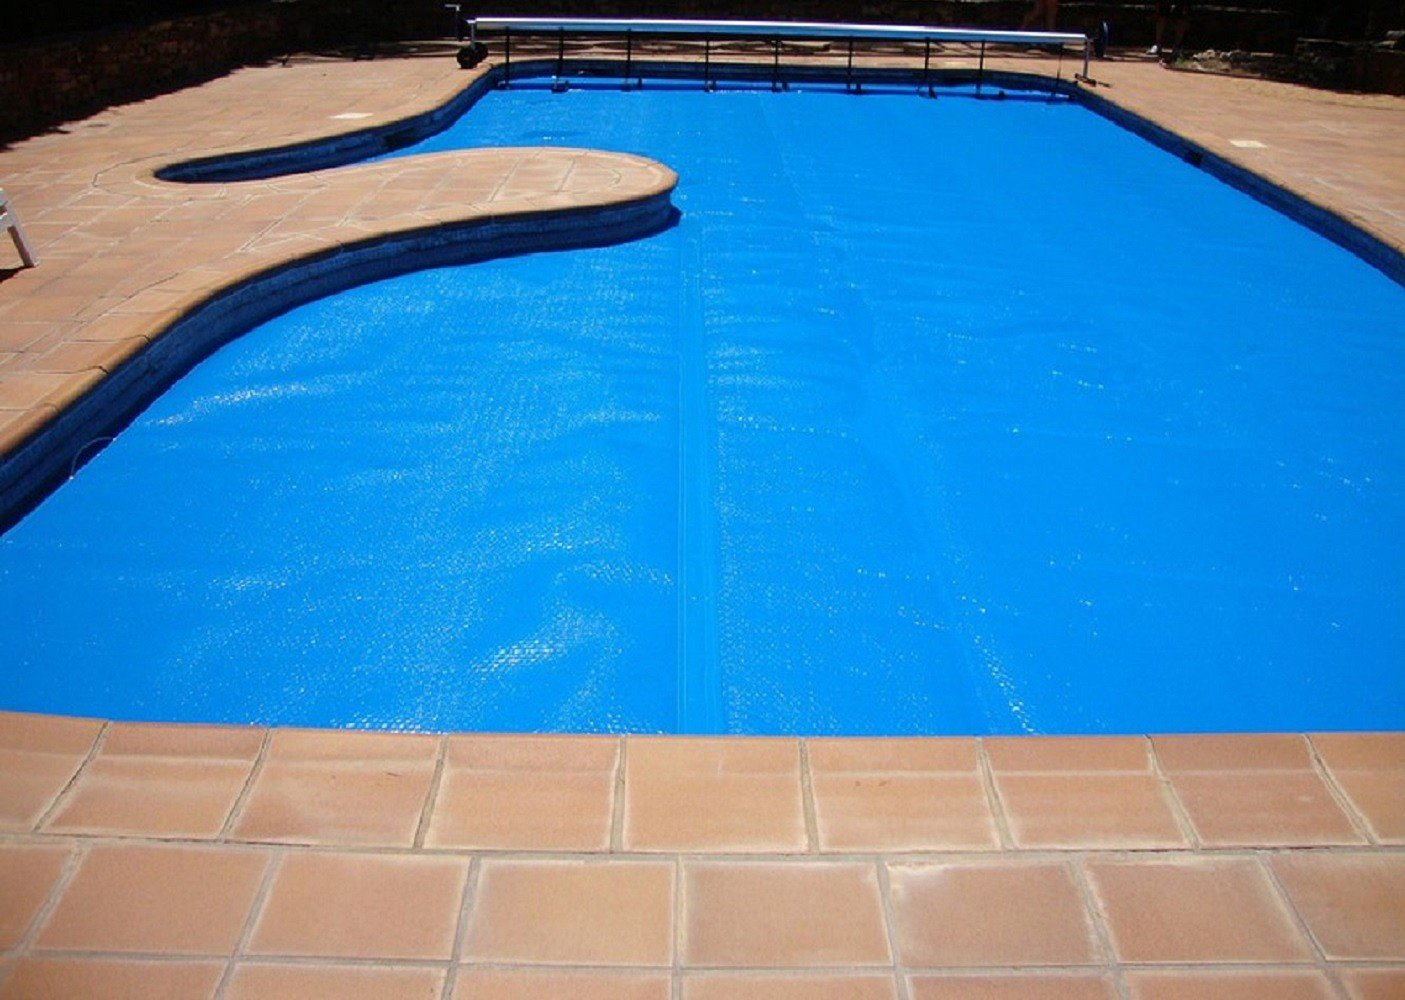 INTERNATIONAL COVER POOL Cubierta de Burbujas 600 micras para ...